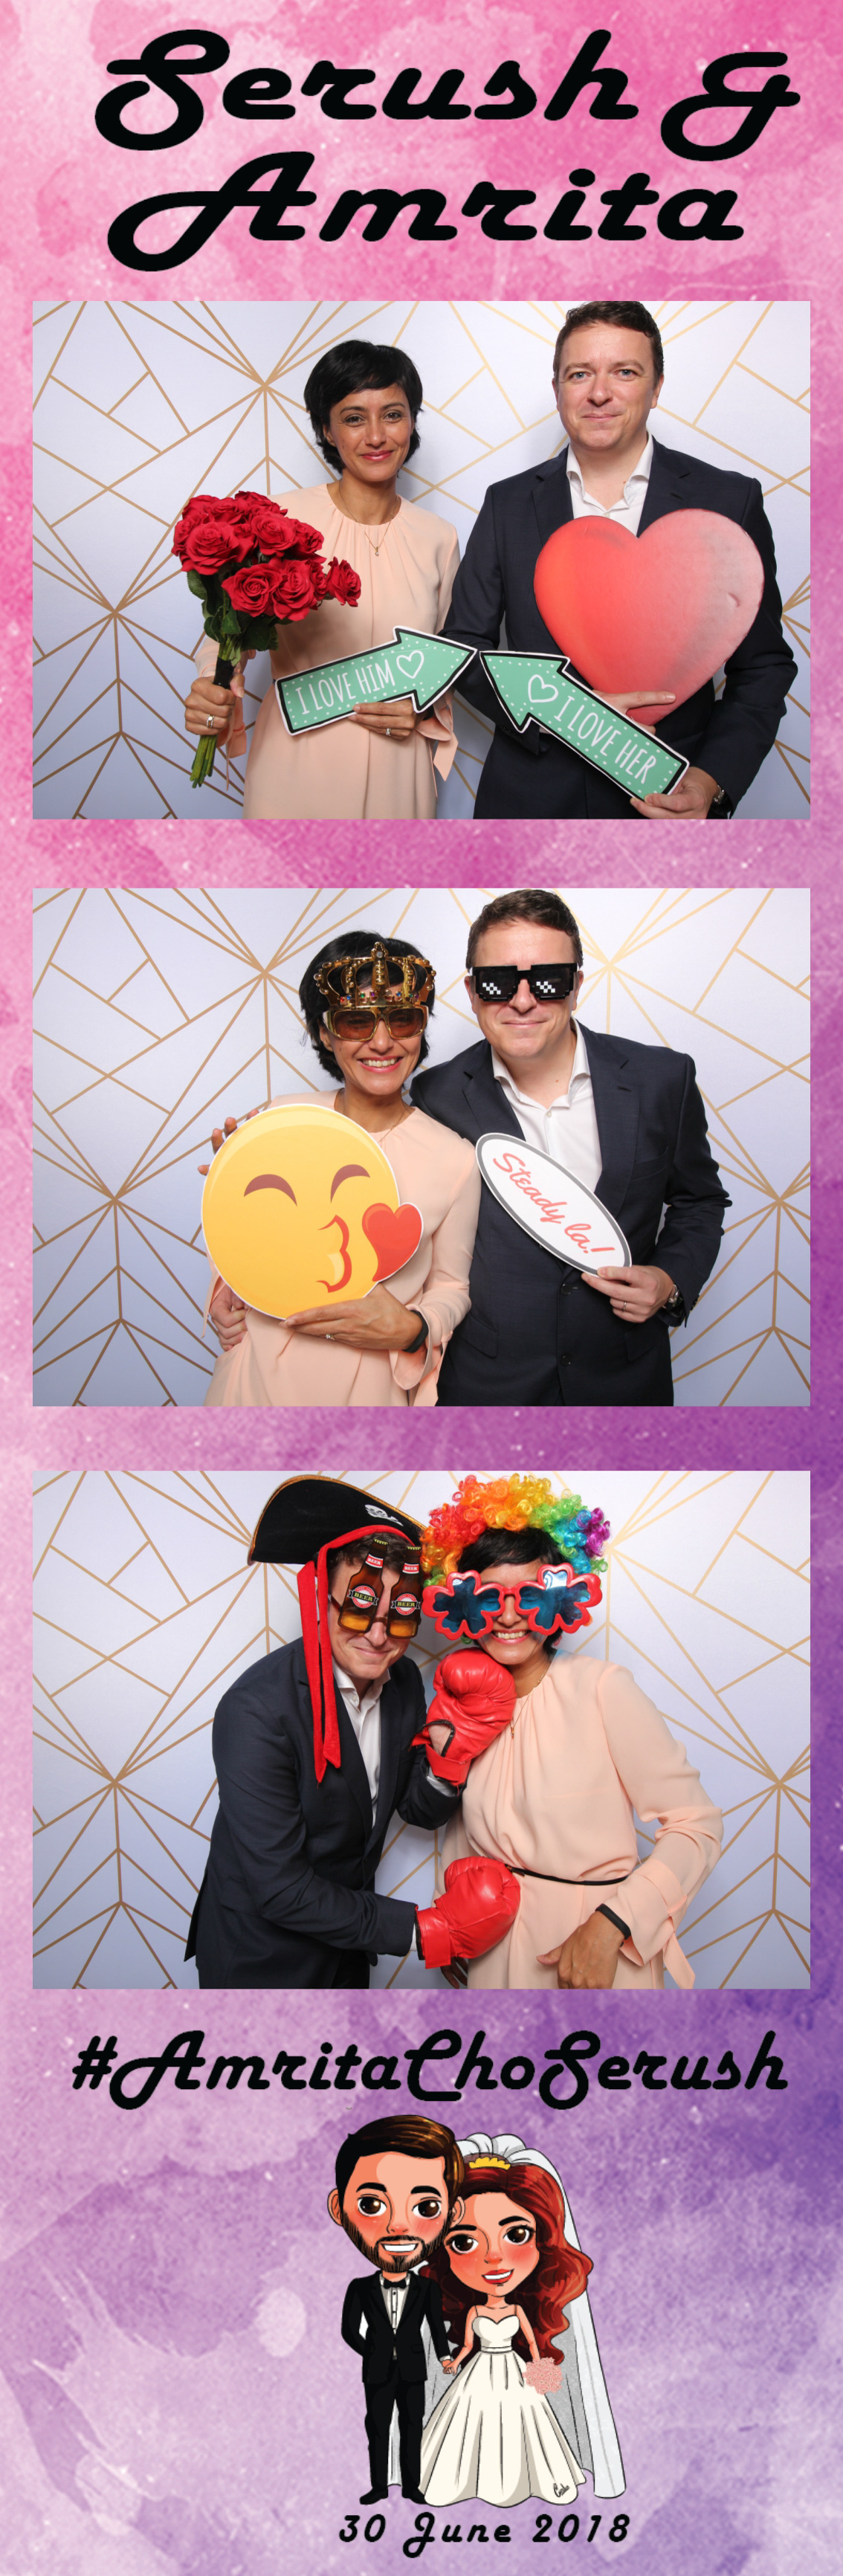 whoots photo booth singapore wedding (6